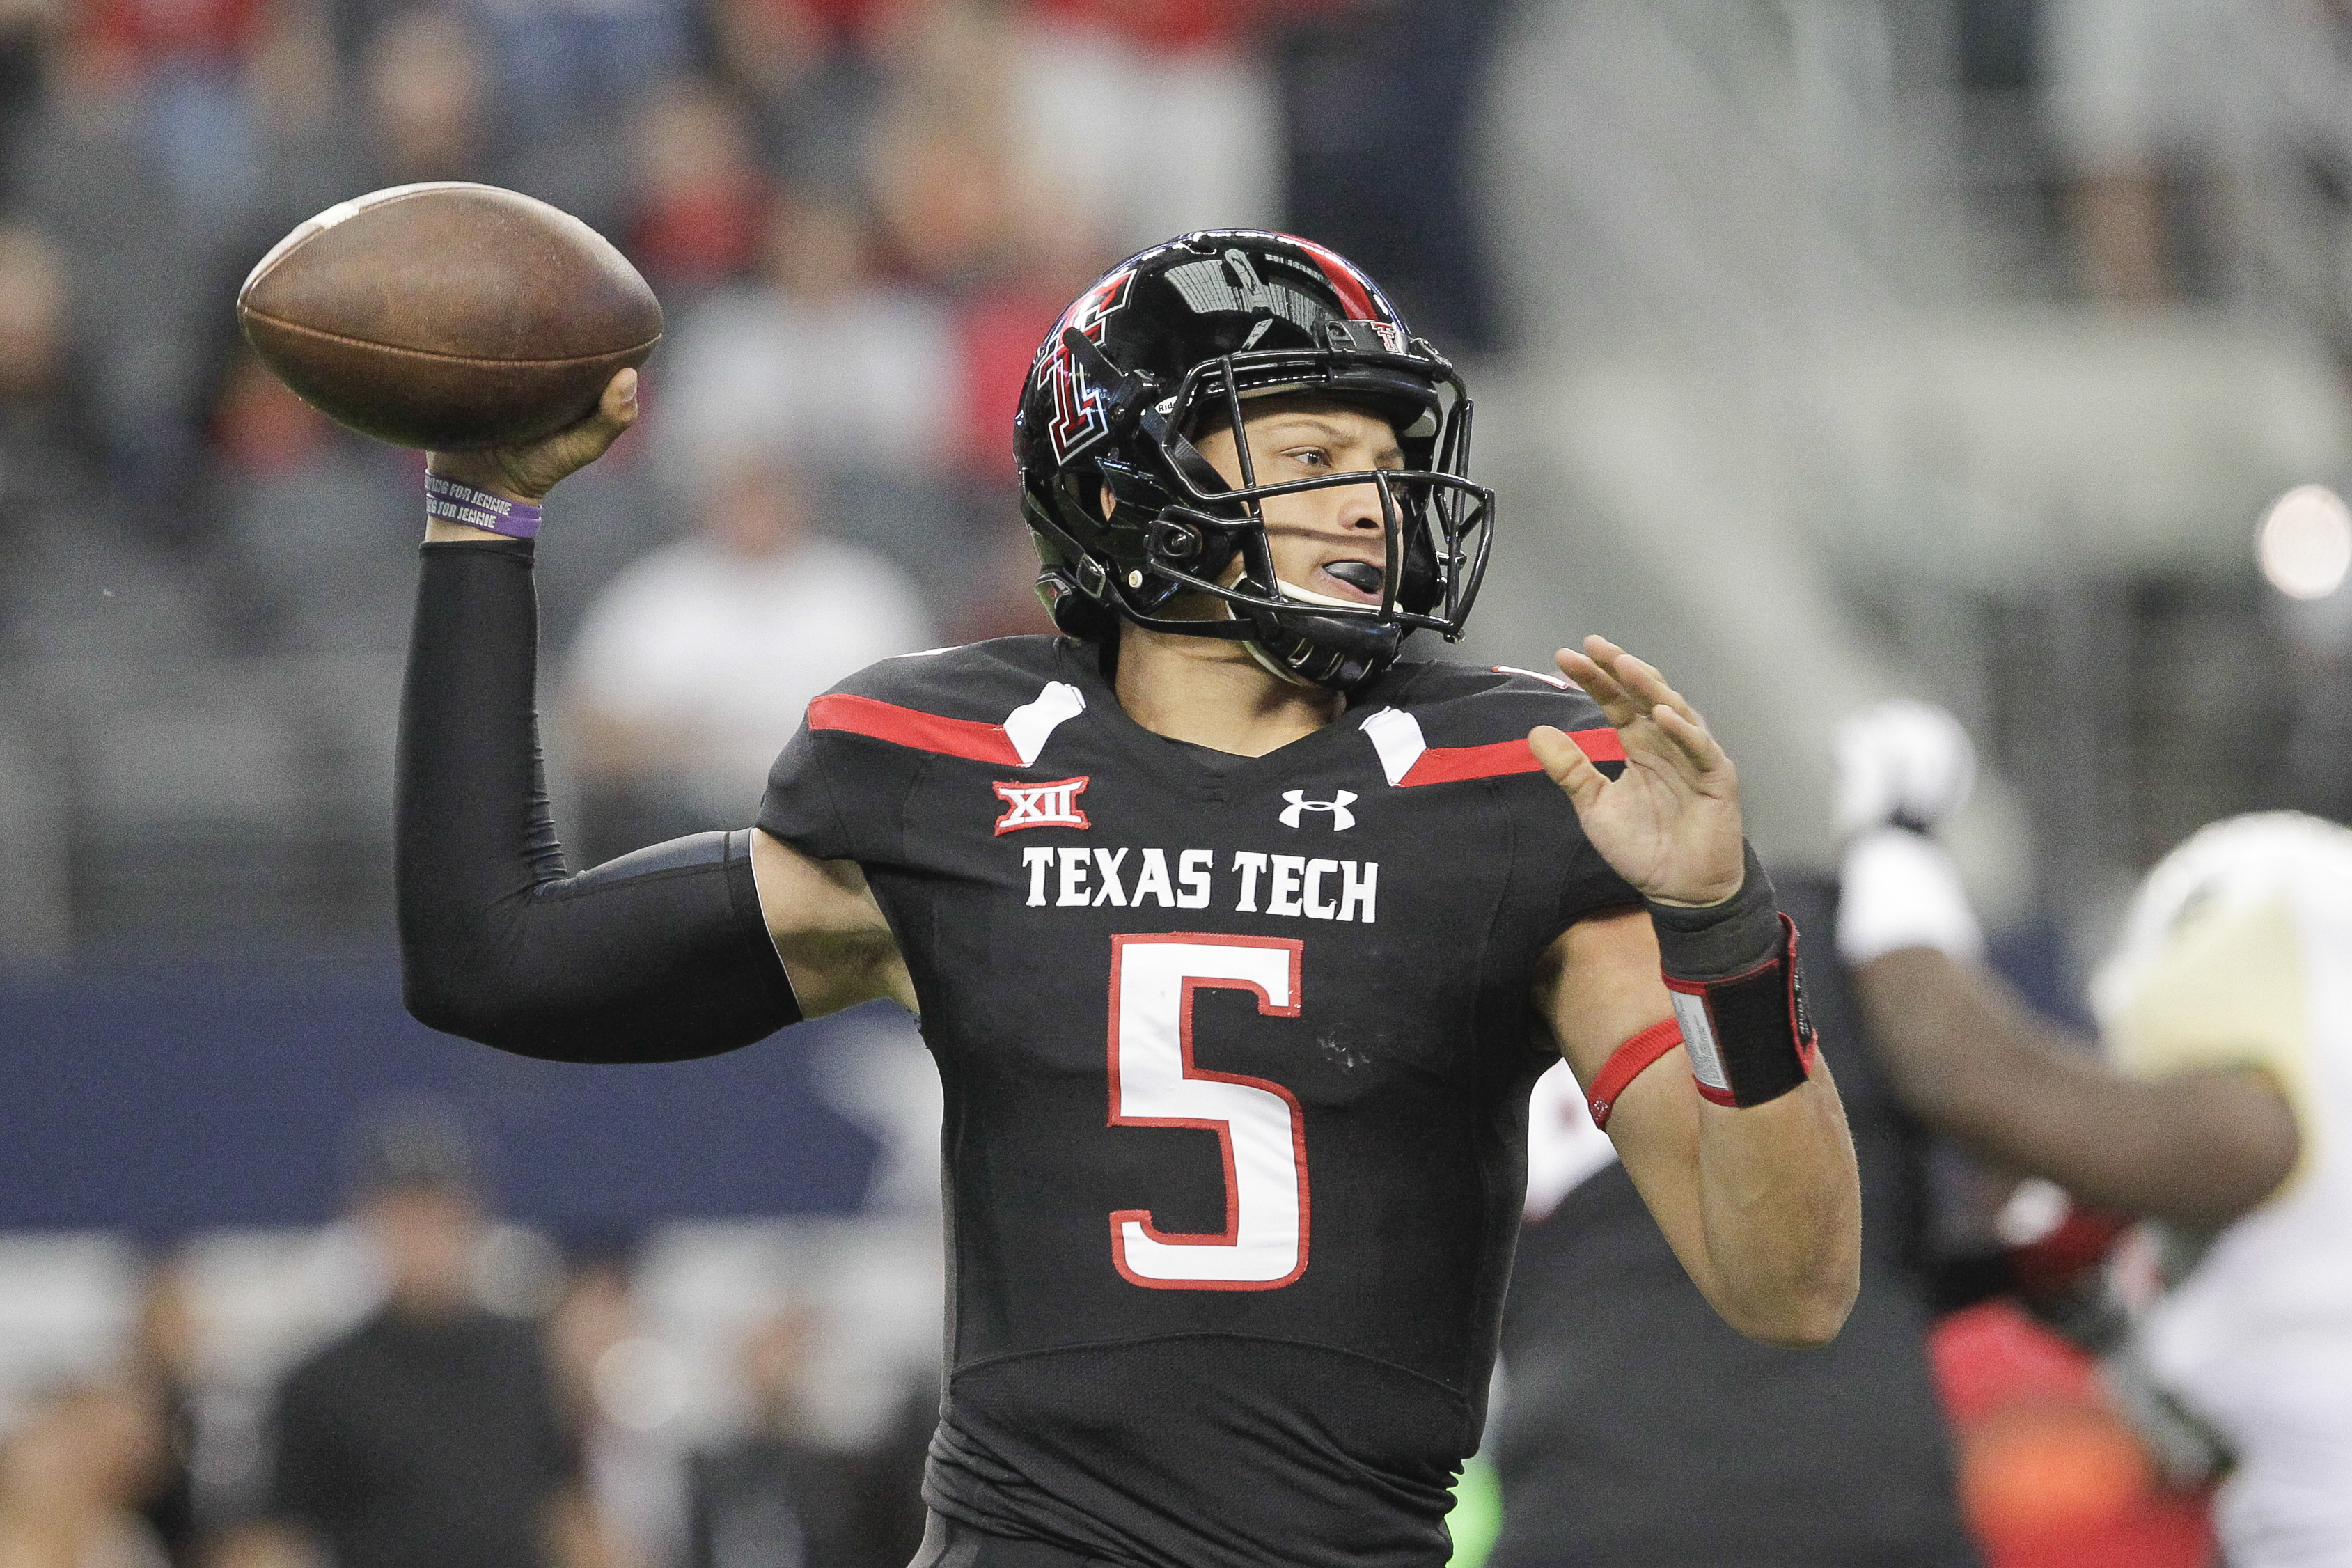 Texas Tech QB Patrick Mahomes Declares For NFL Draft, Signs With Steinberg Sports